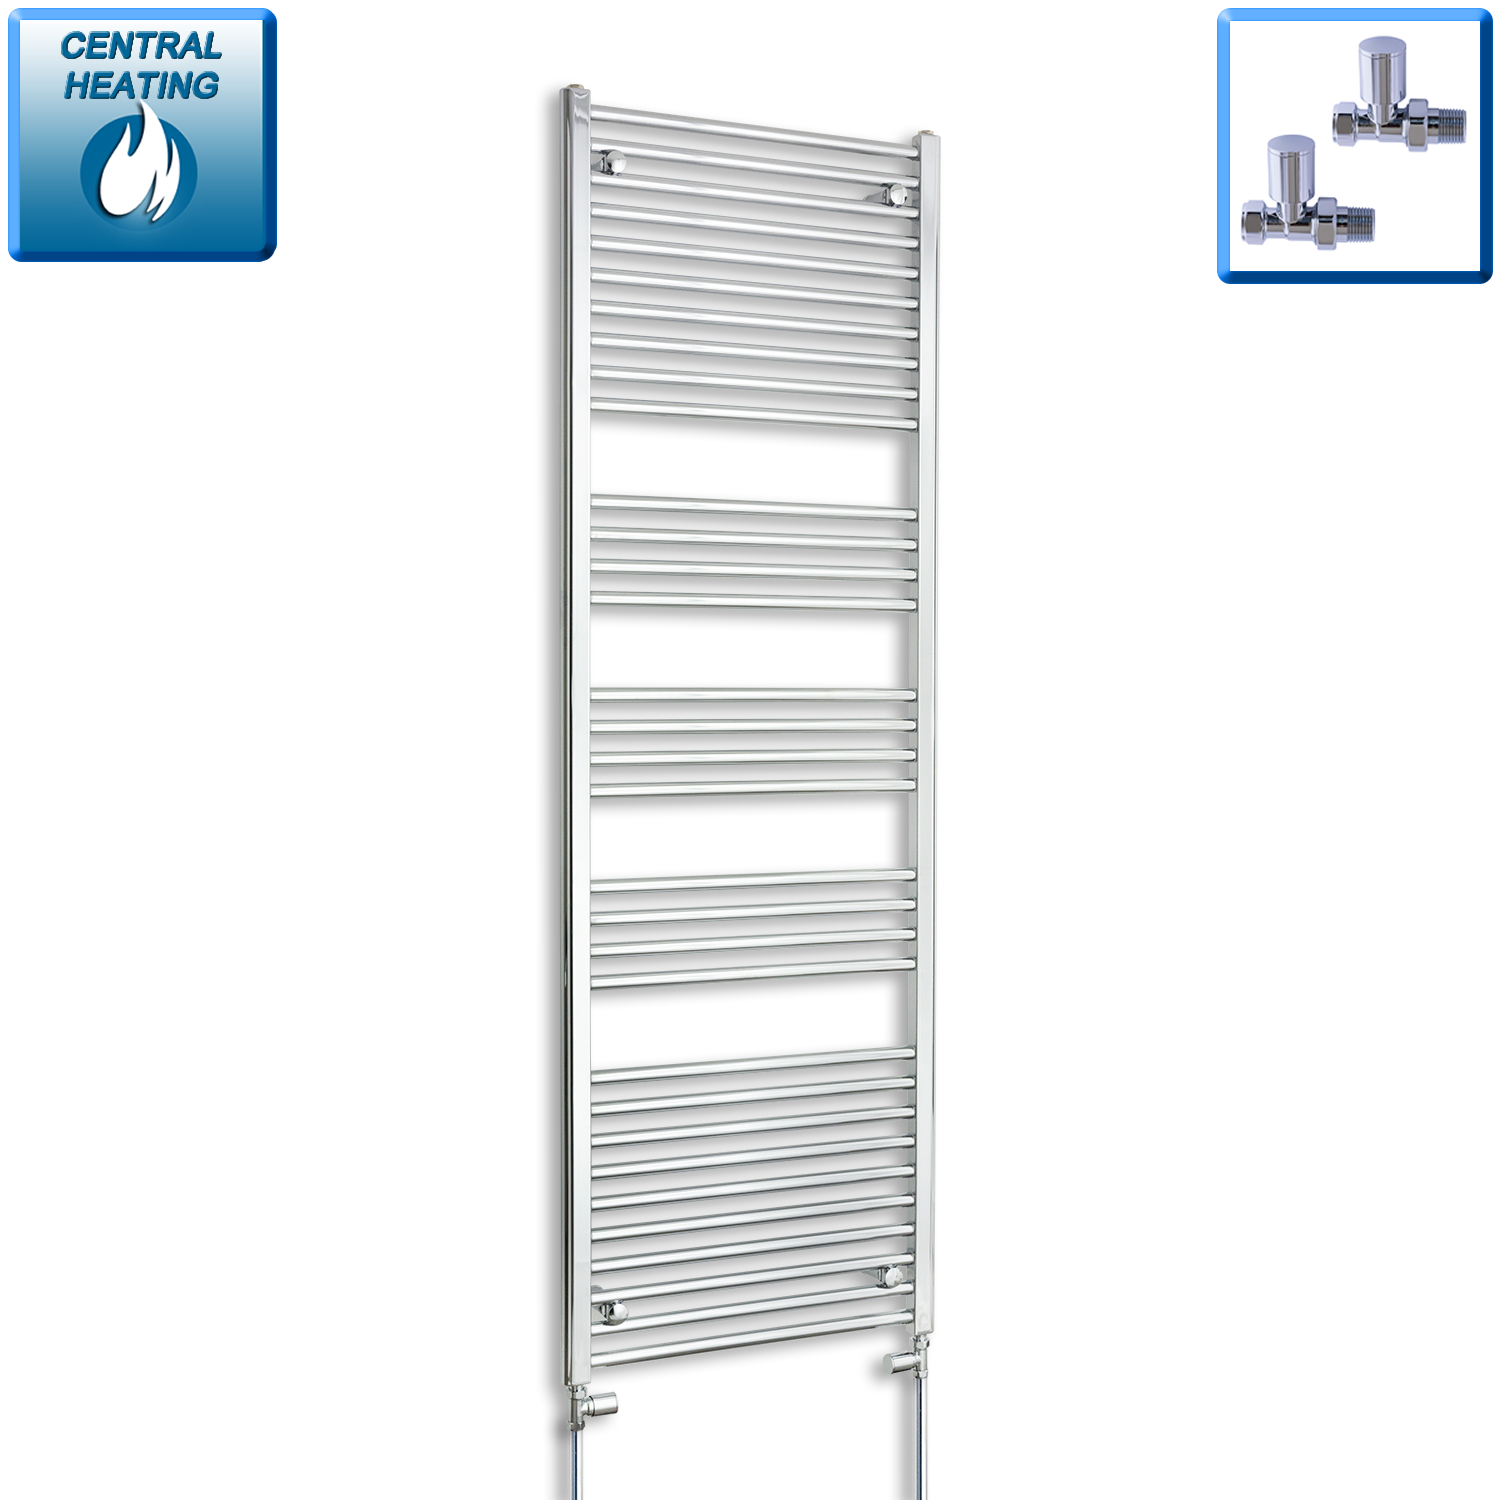 600mm Wide 1800mm High Straight Chrome Heated Towel Rail Radiator HTR,With Straight Valve